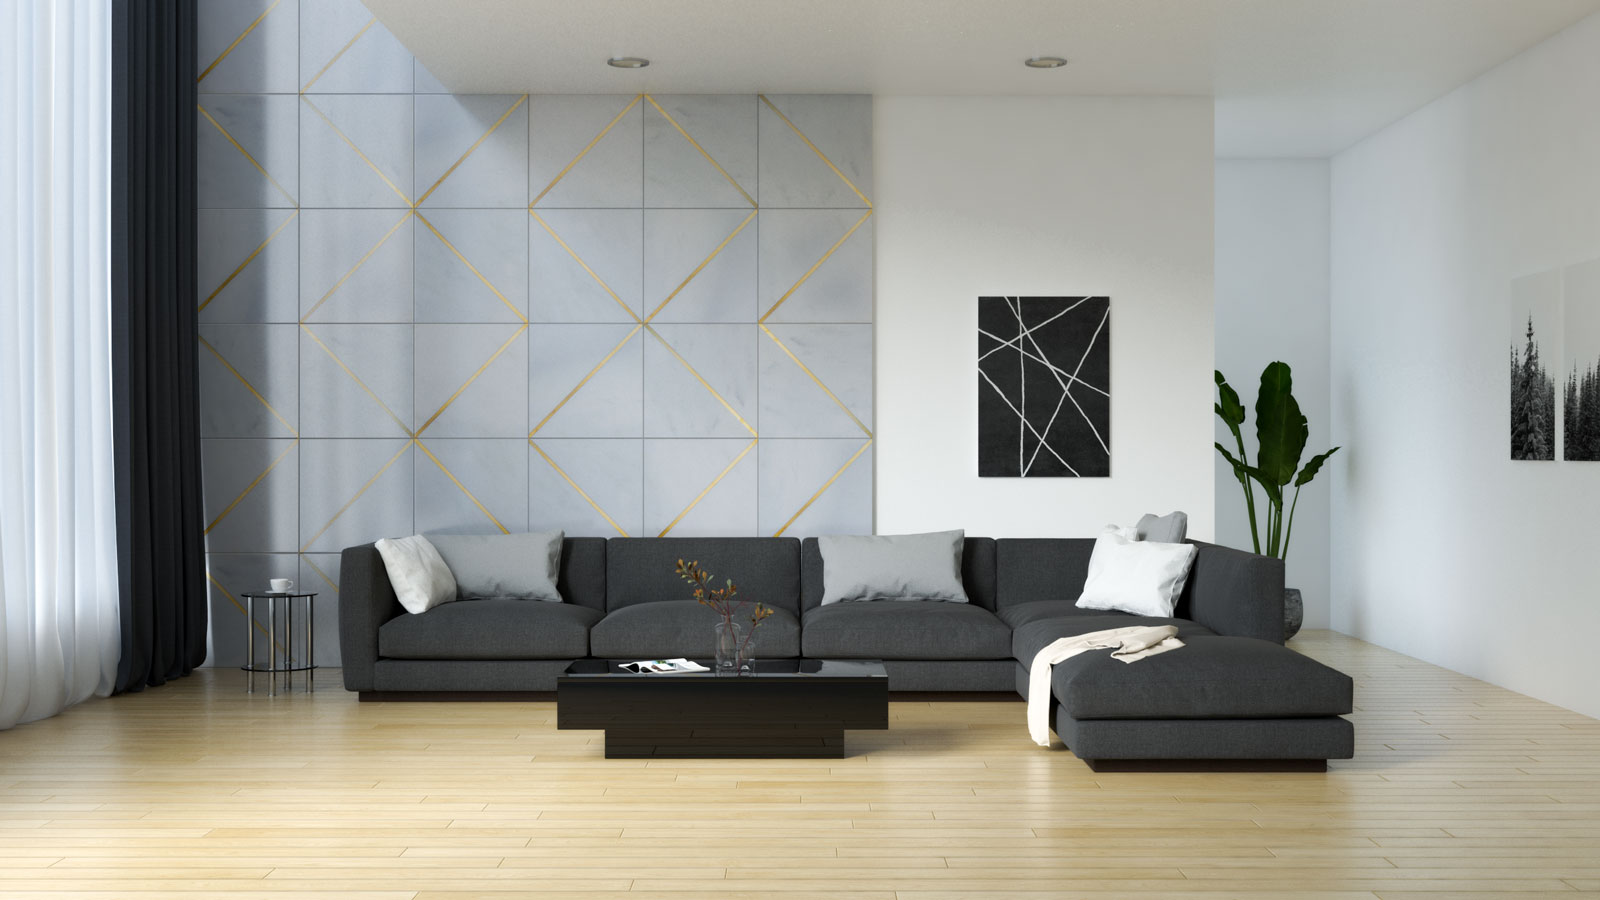 Living room with black furnishings and light natural wood floors